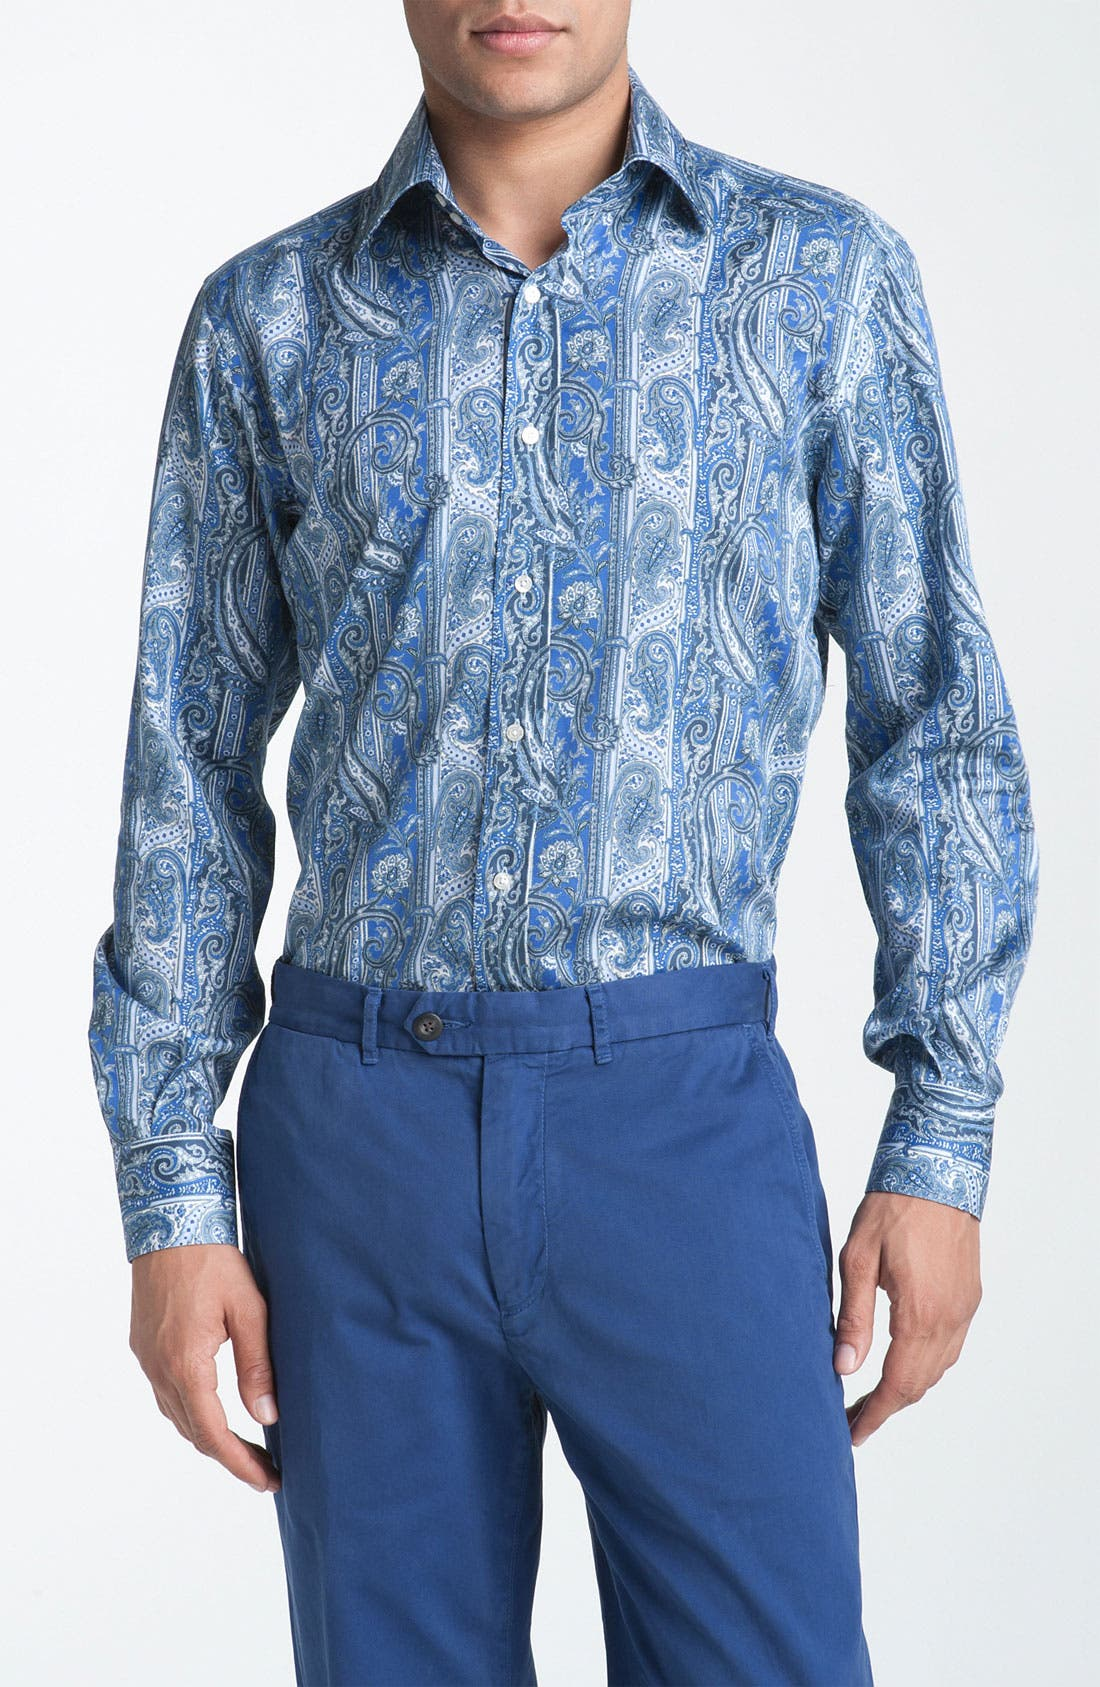 Alternate Image 1 Selected - Etro Paisley Woven Dress Shirt